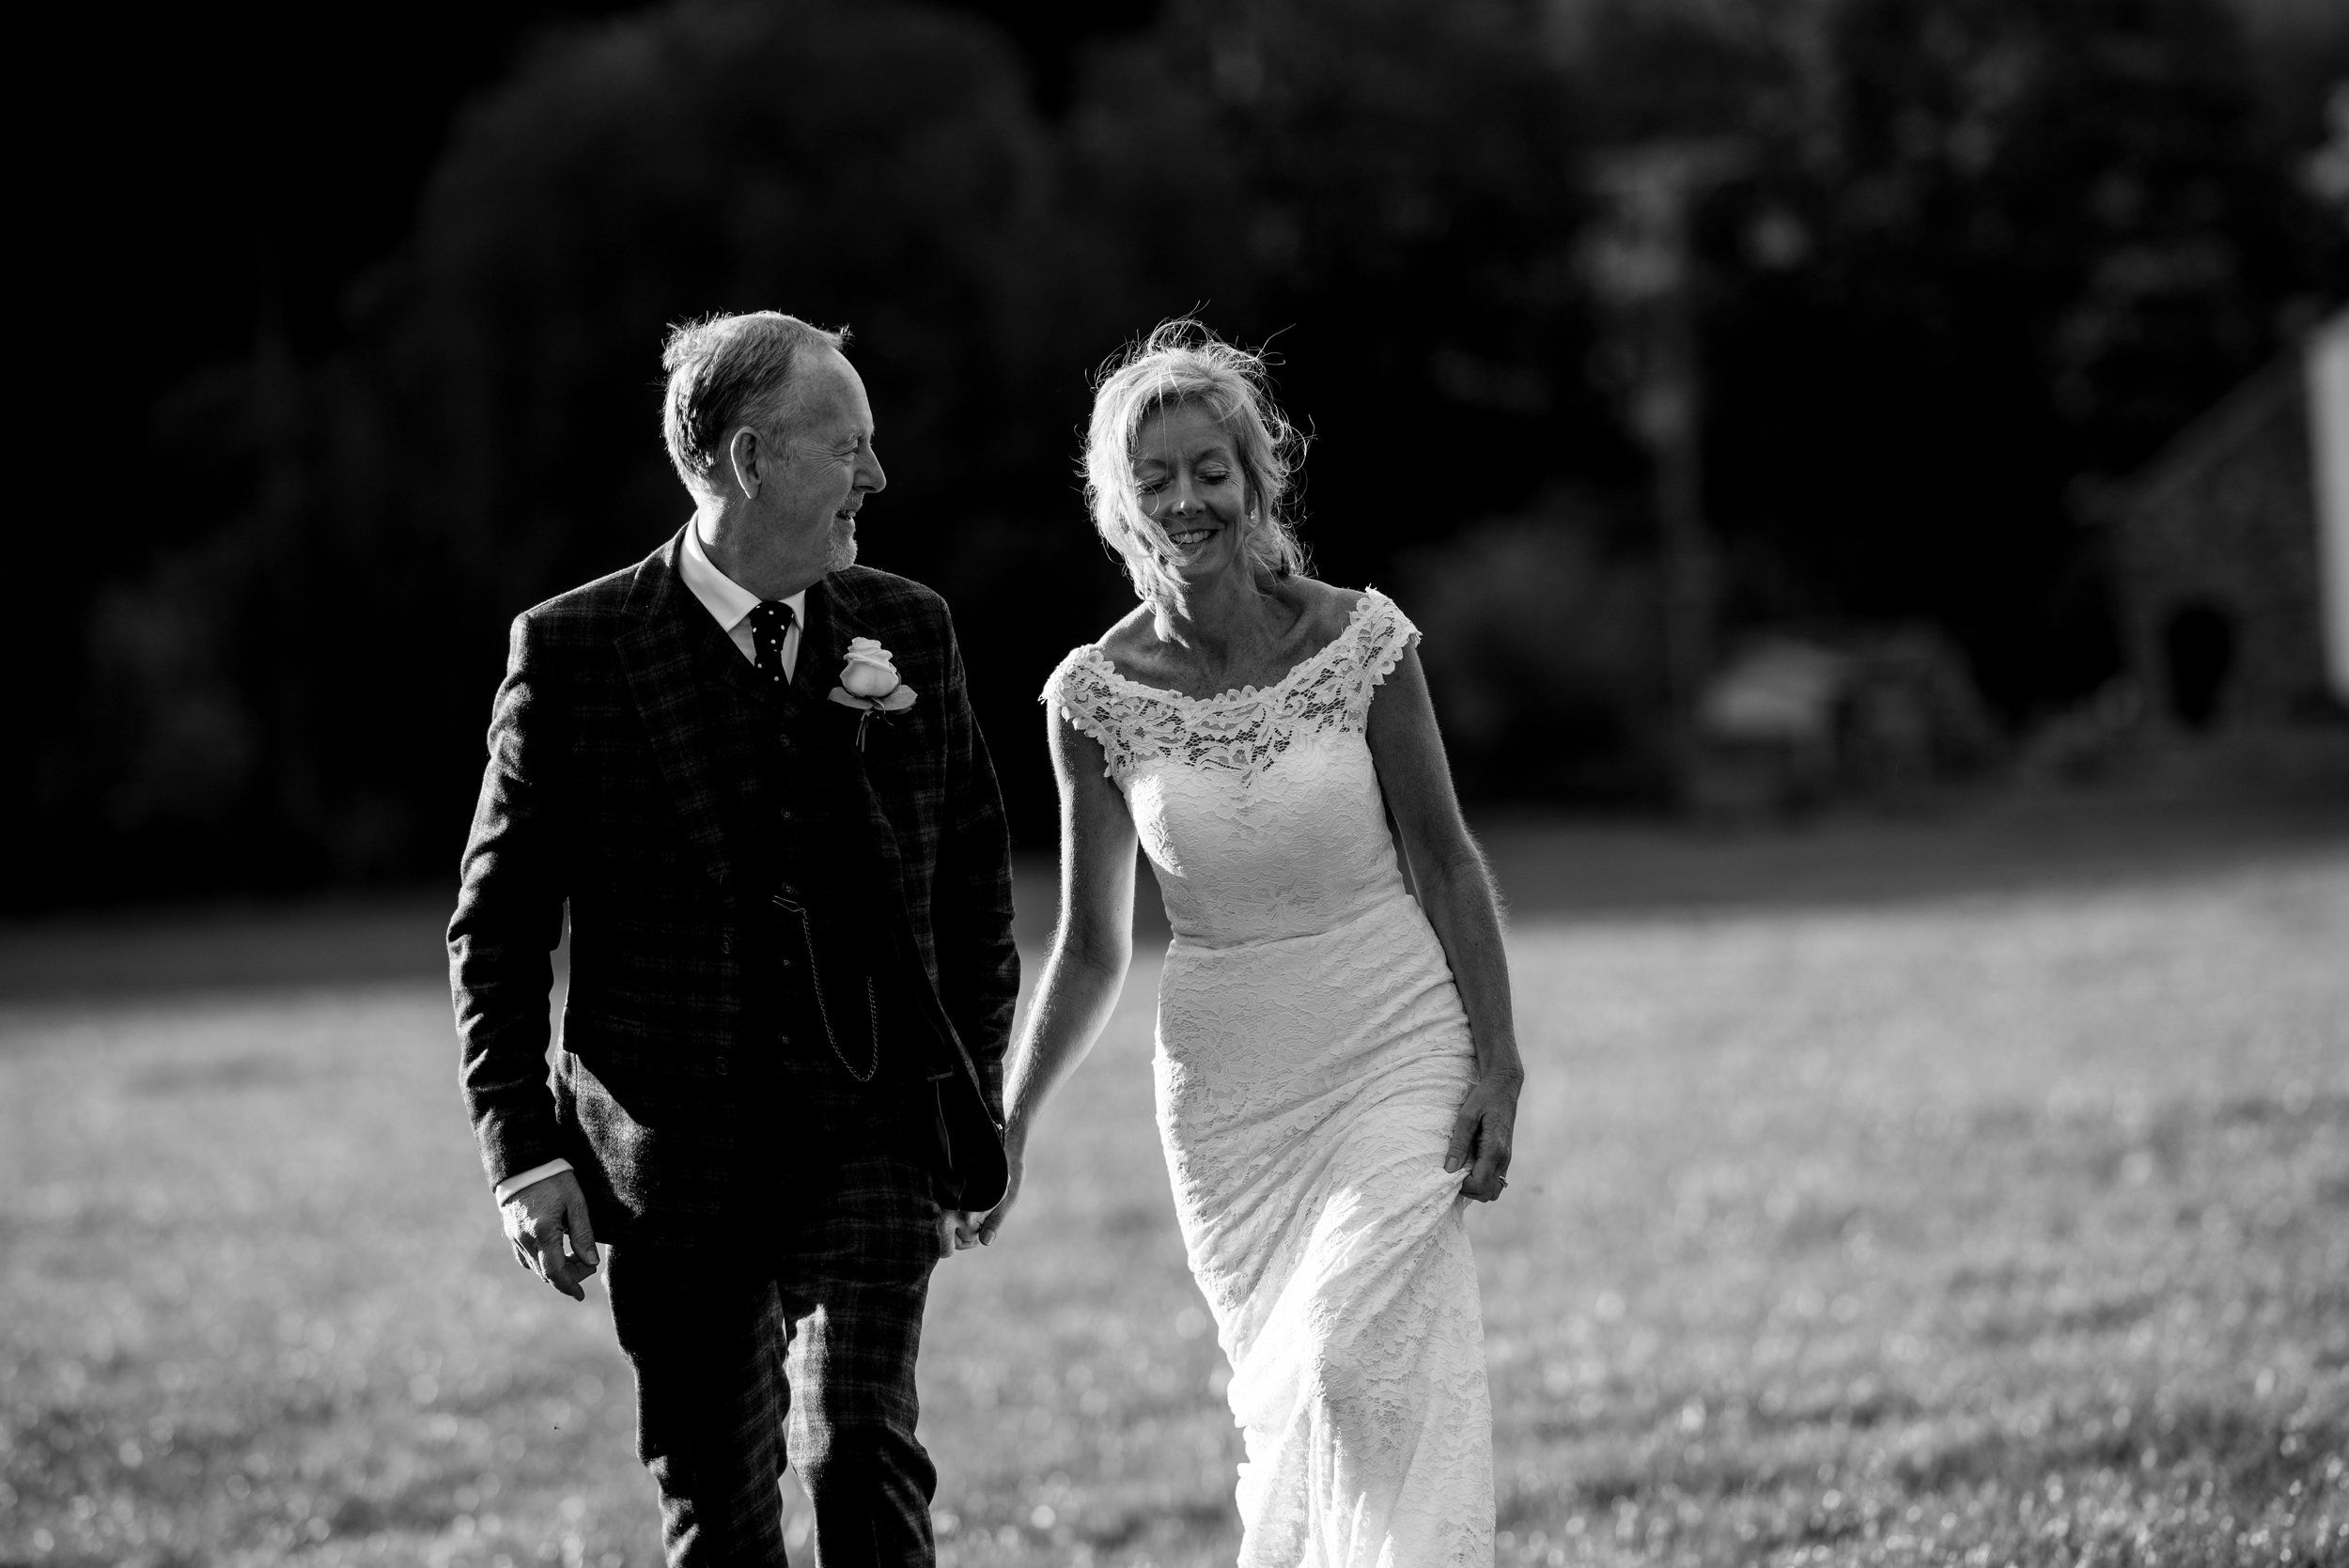 A black and white image of the bride and groom walking towards the camera